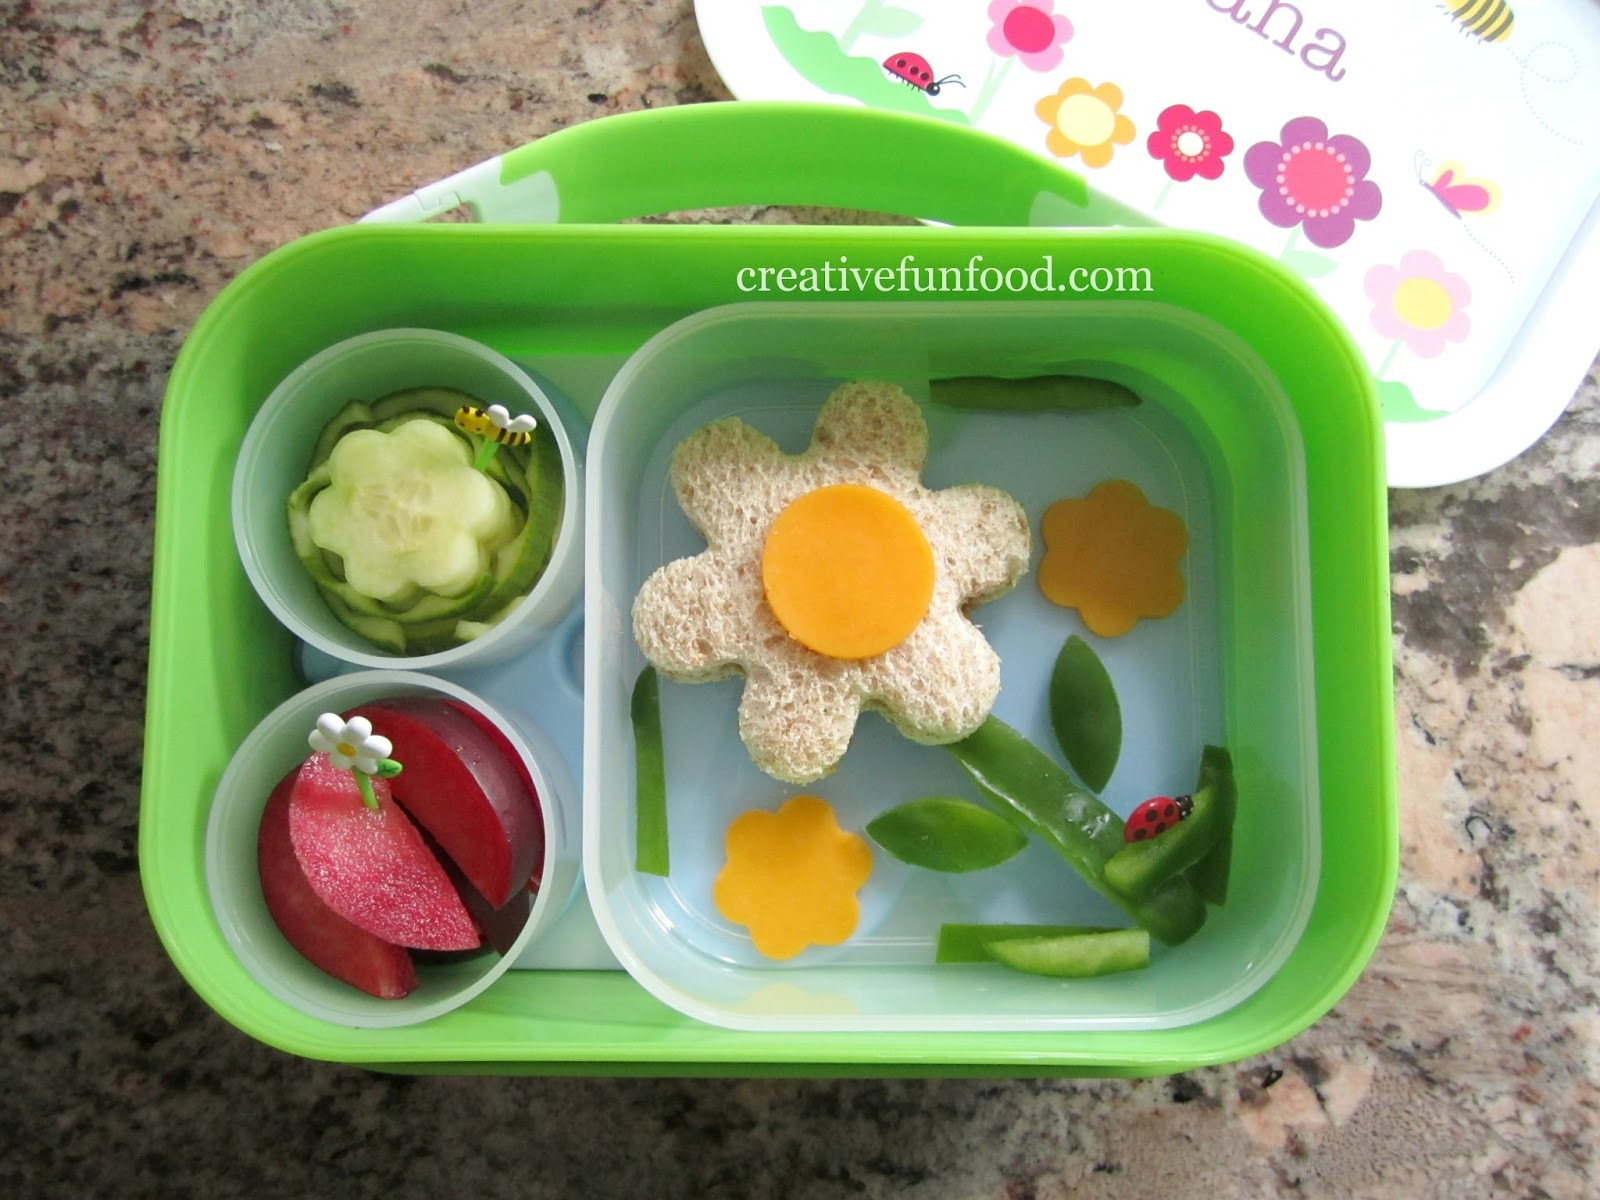 creative food back to school essentials lunchboxes. Black Bedroom Furniture Sets. Home Design Ideas